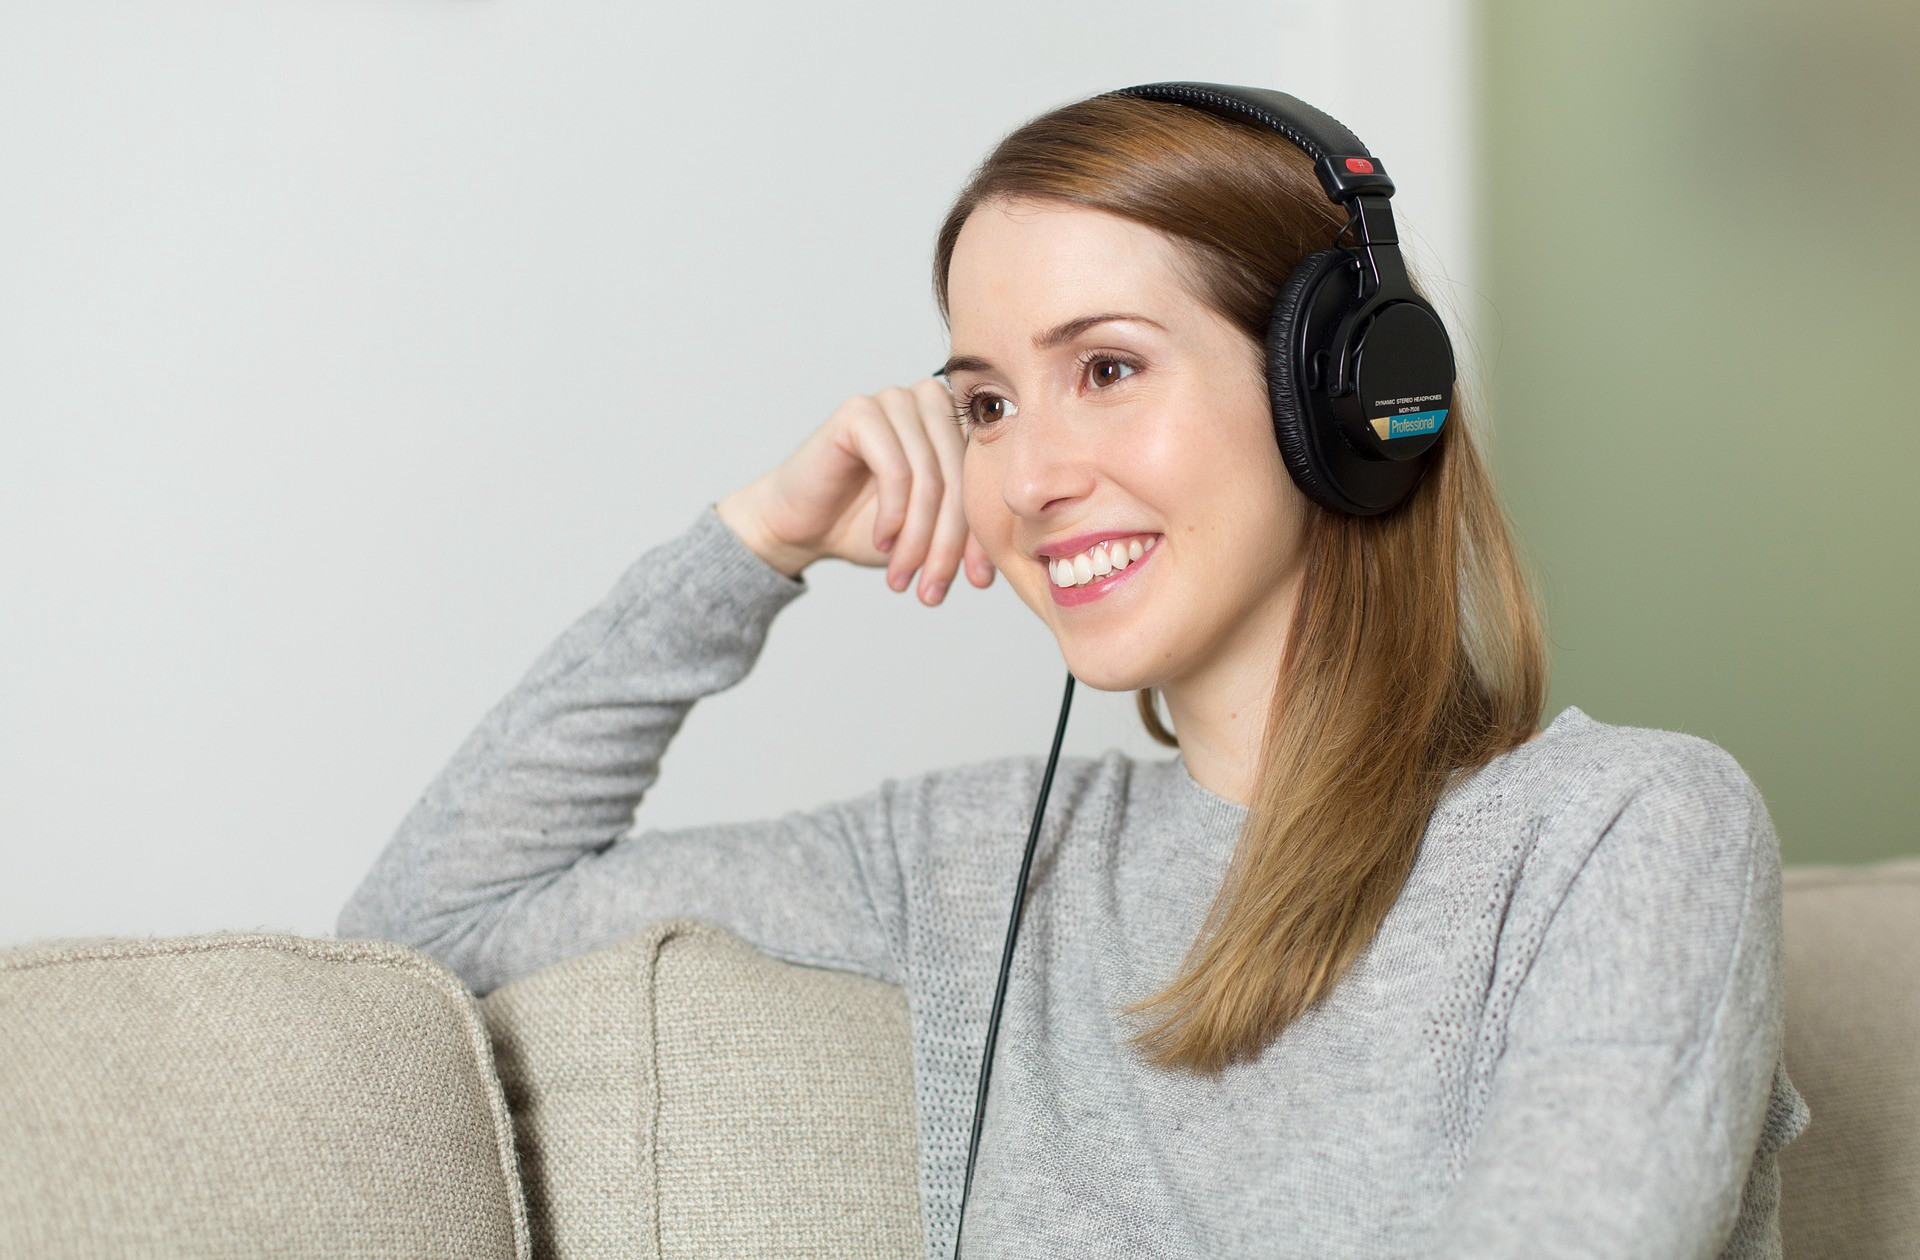 A woman listening to music on her headphones